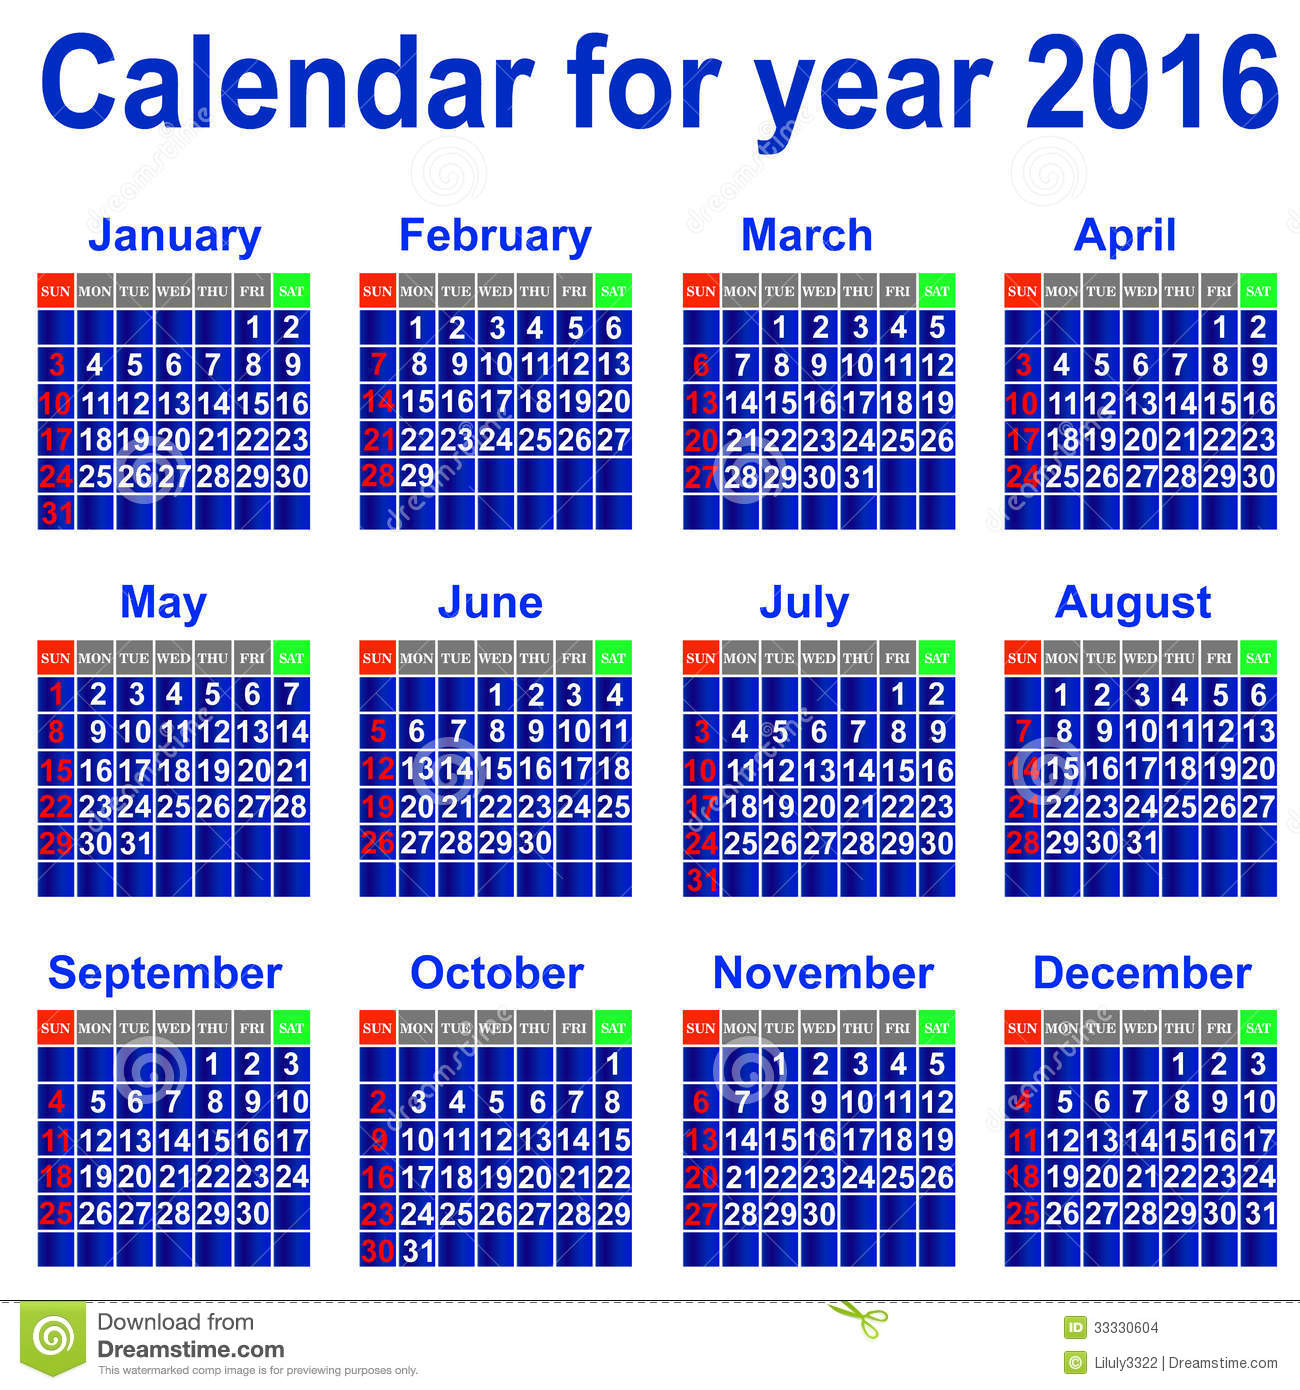 Event Calendar For Organization : Calendar for year stock images image